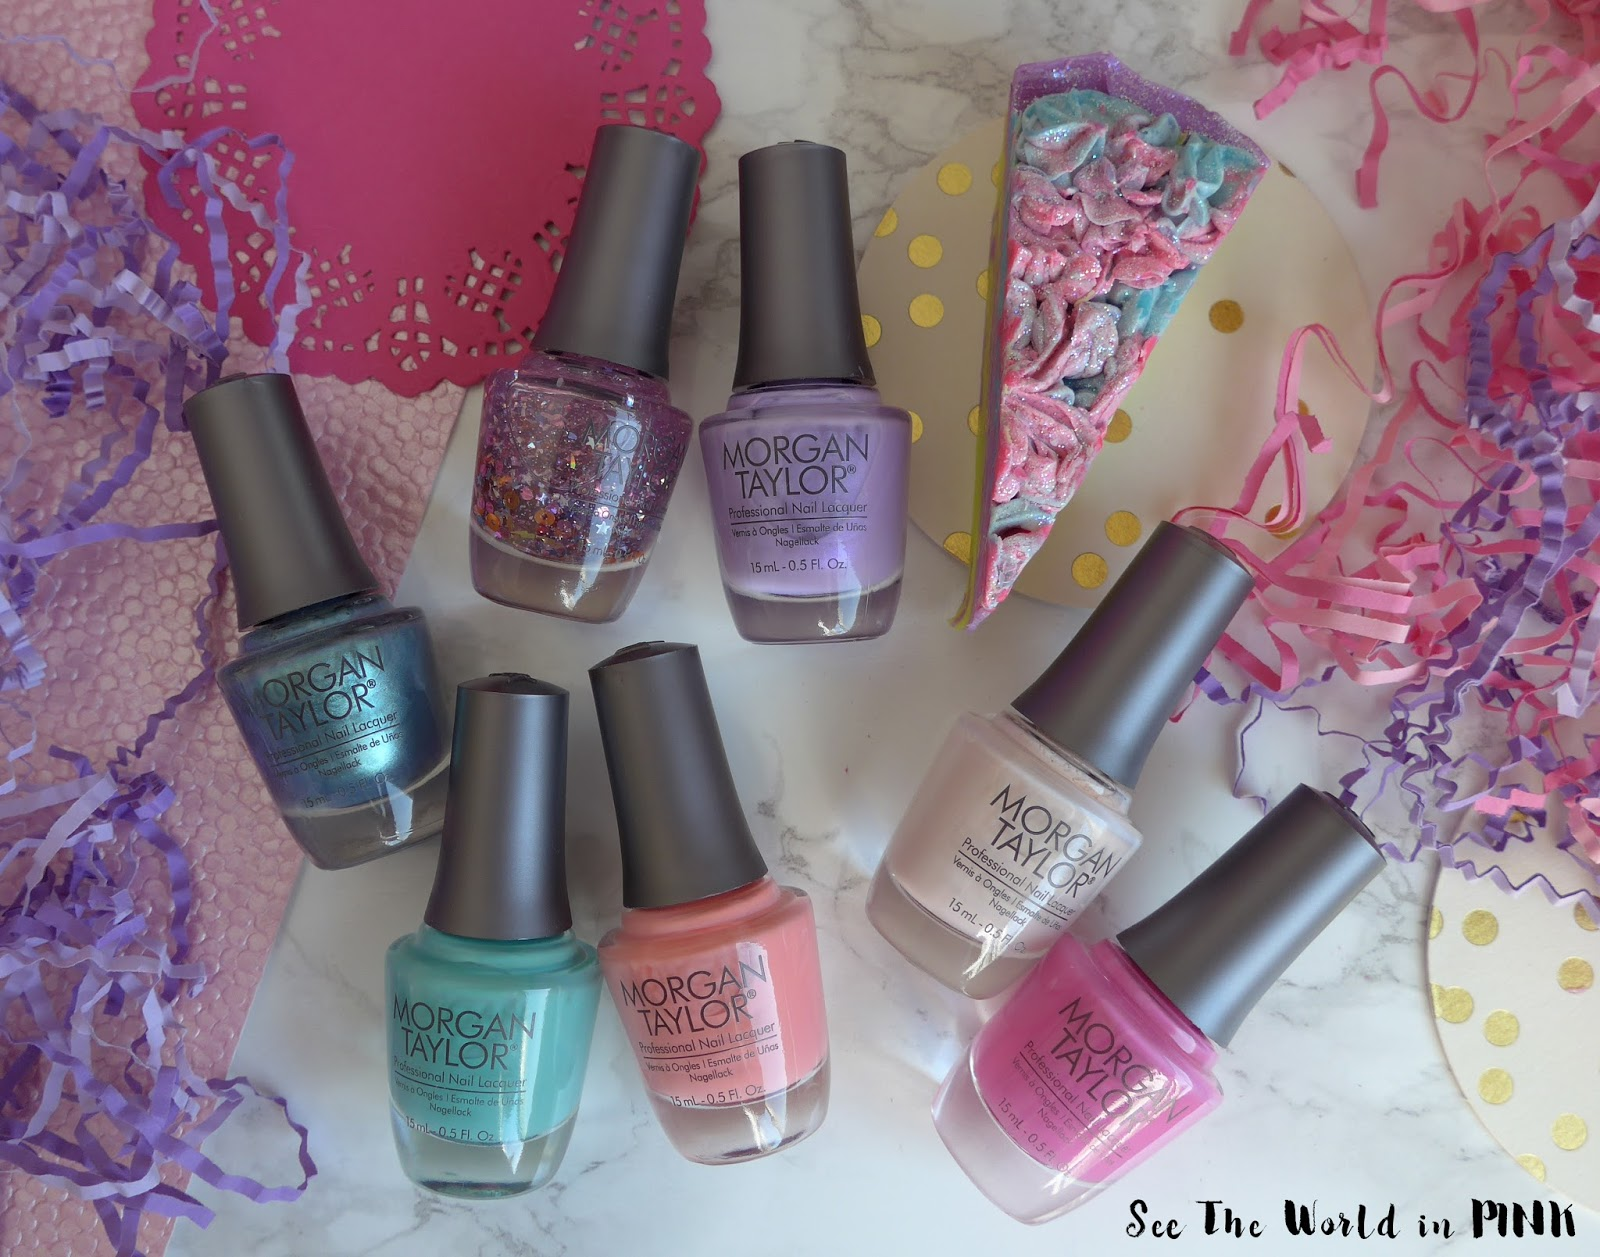 Manicure Monday - Morgan Taylor's Royal Temptations Spring 2018 Collection!